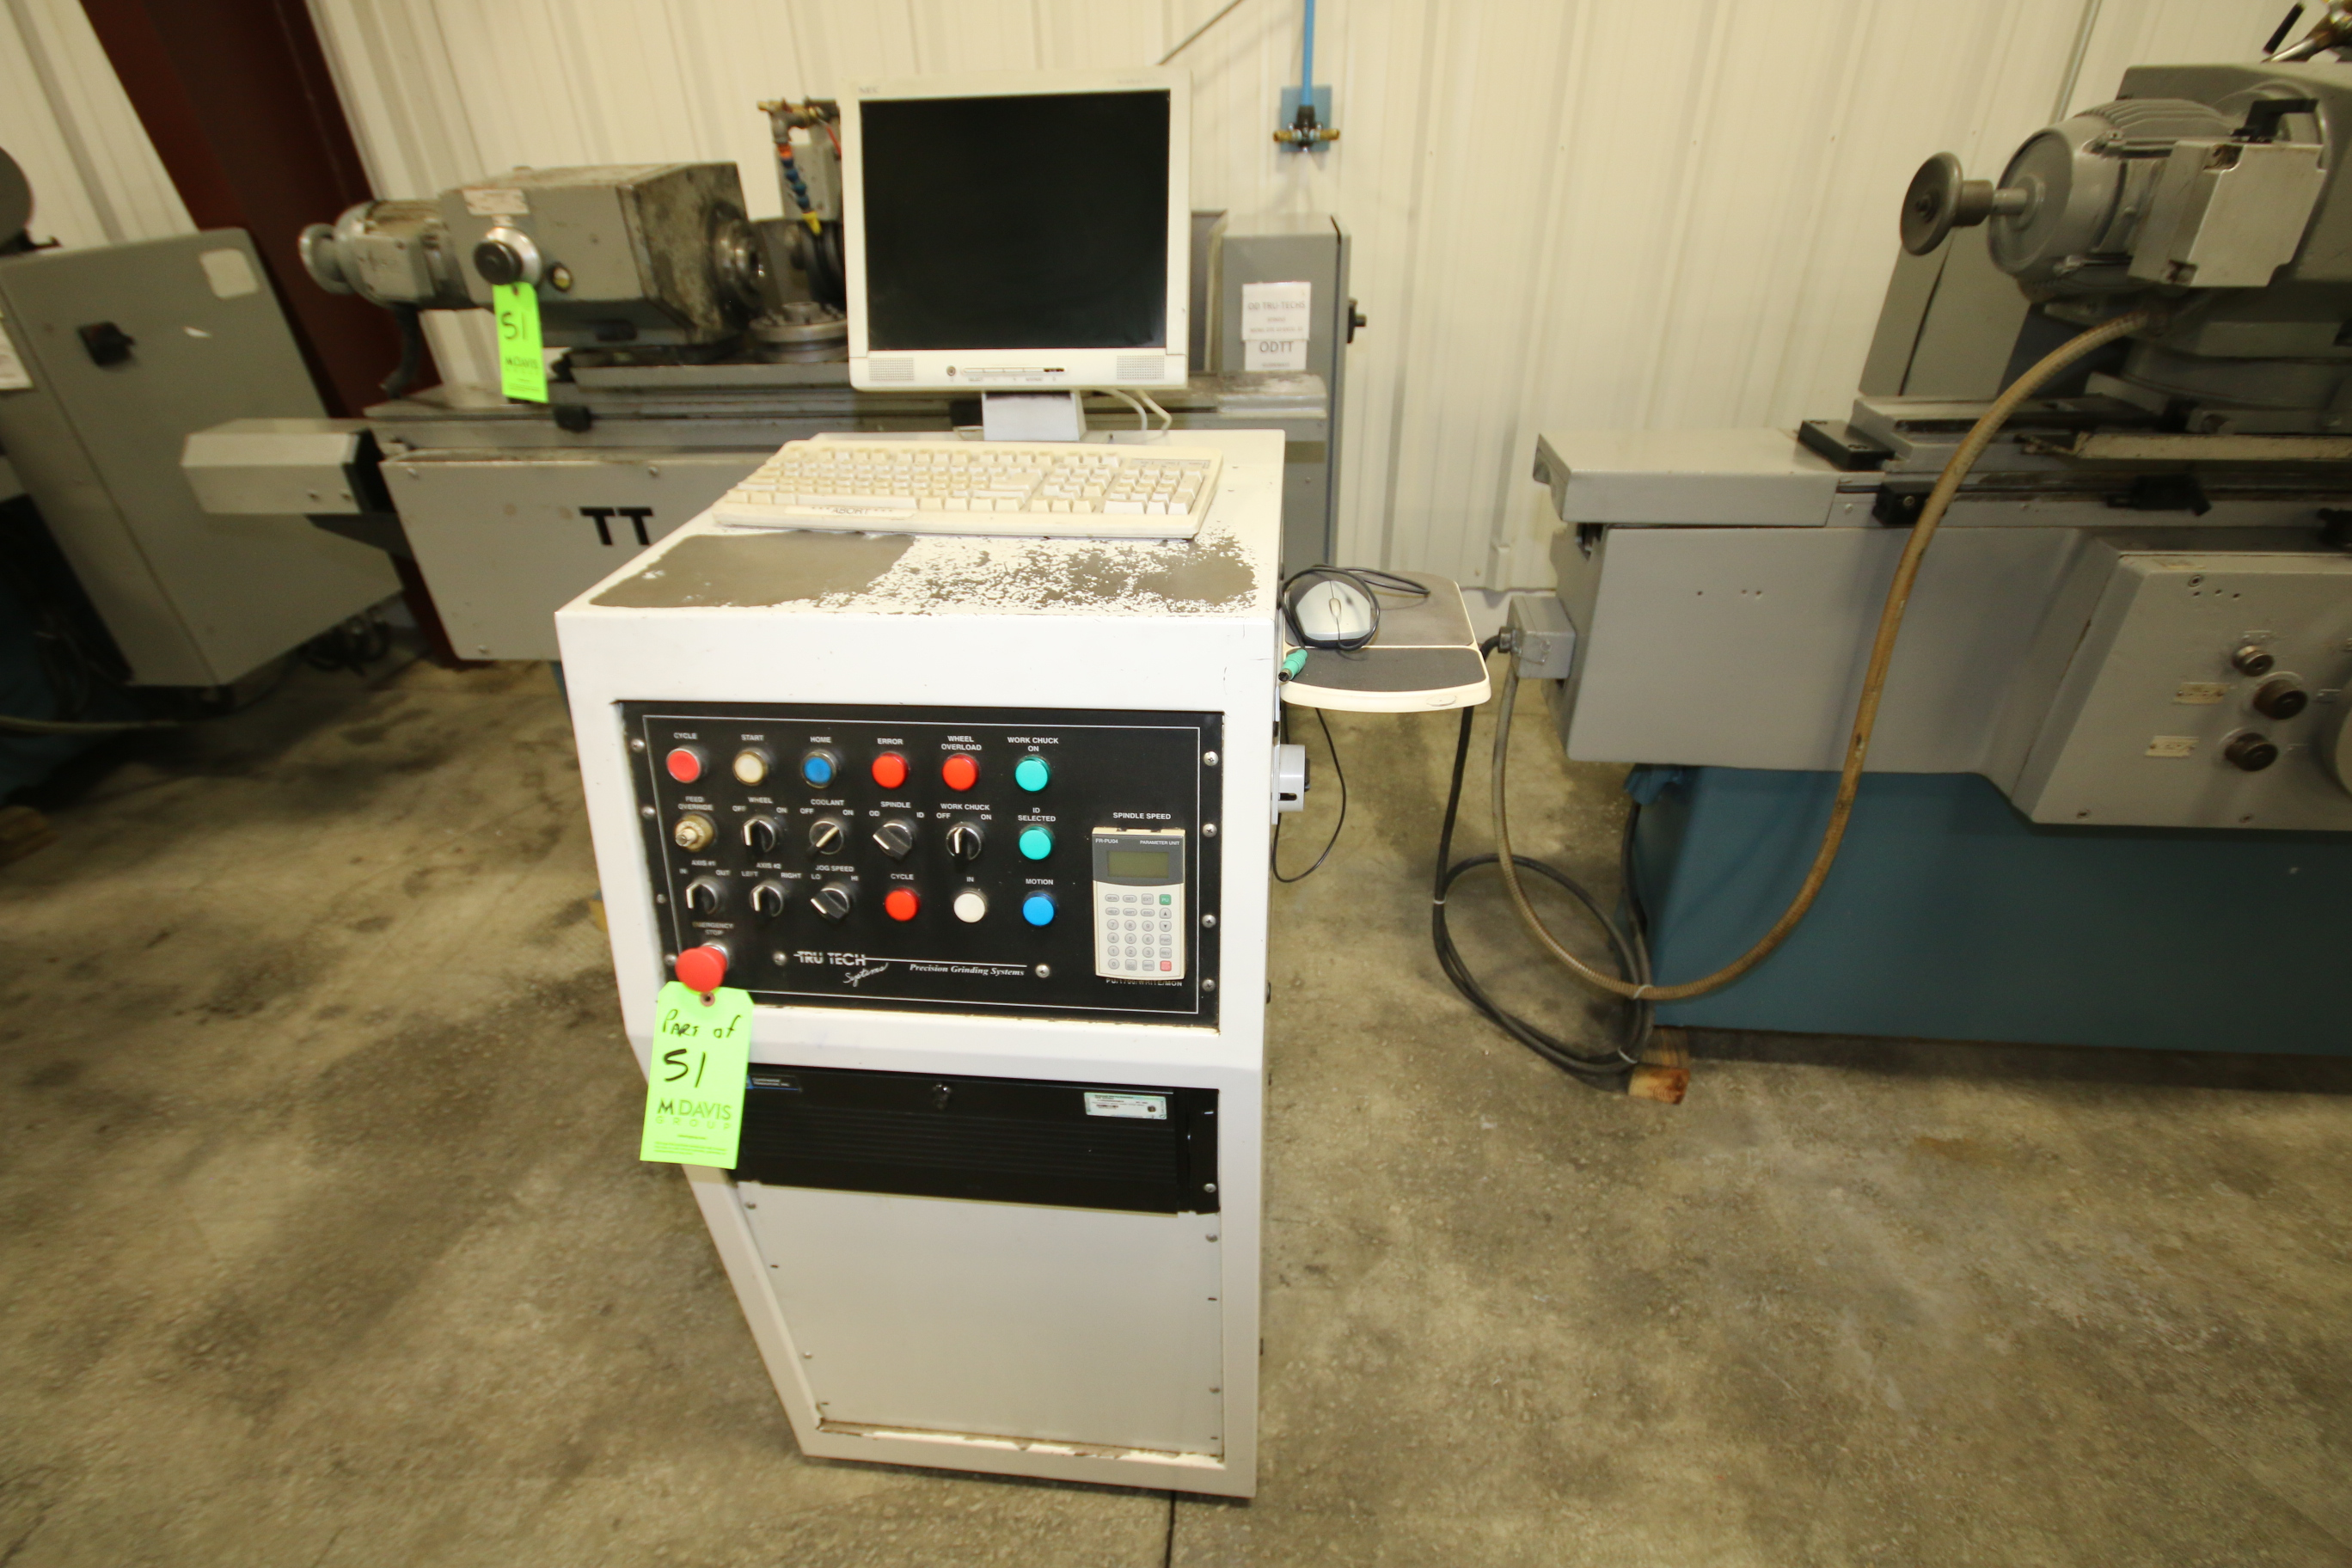 Lot 51 - 2007 R-Series OD Grinder with Conversion to CNC by Tru Tech Systems, Model OD-10x20, S/N TTS-8089,